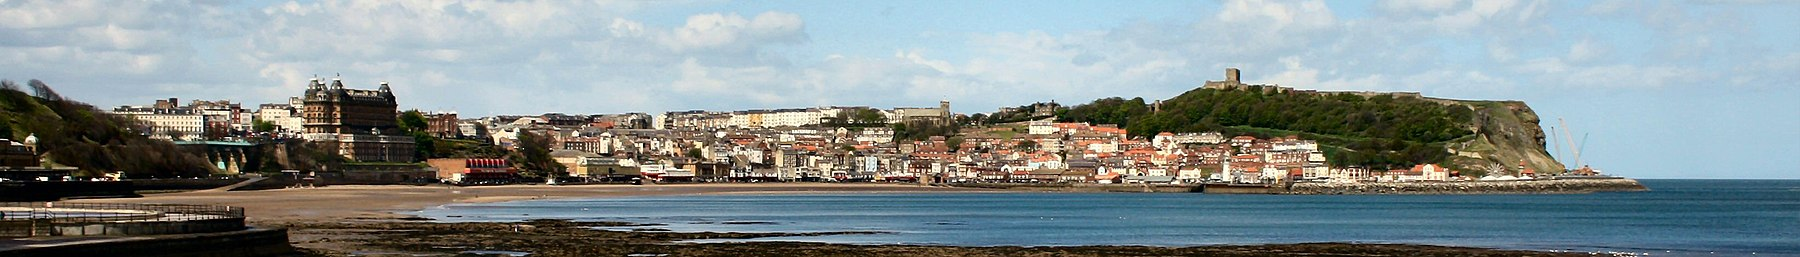 The view across Scarborough's South Bay